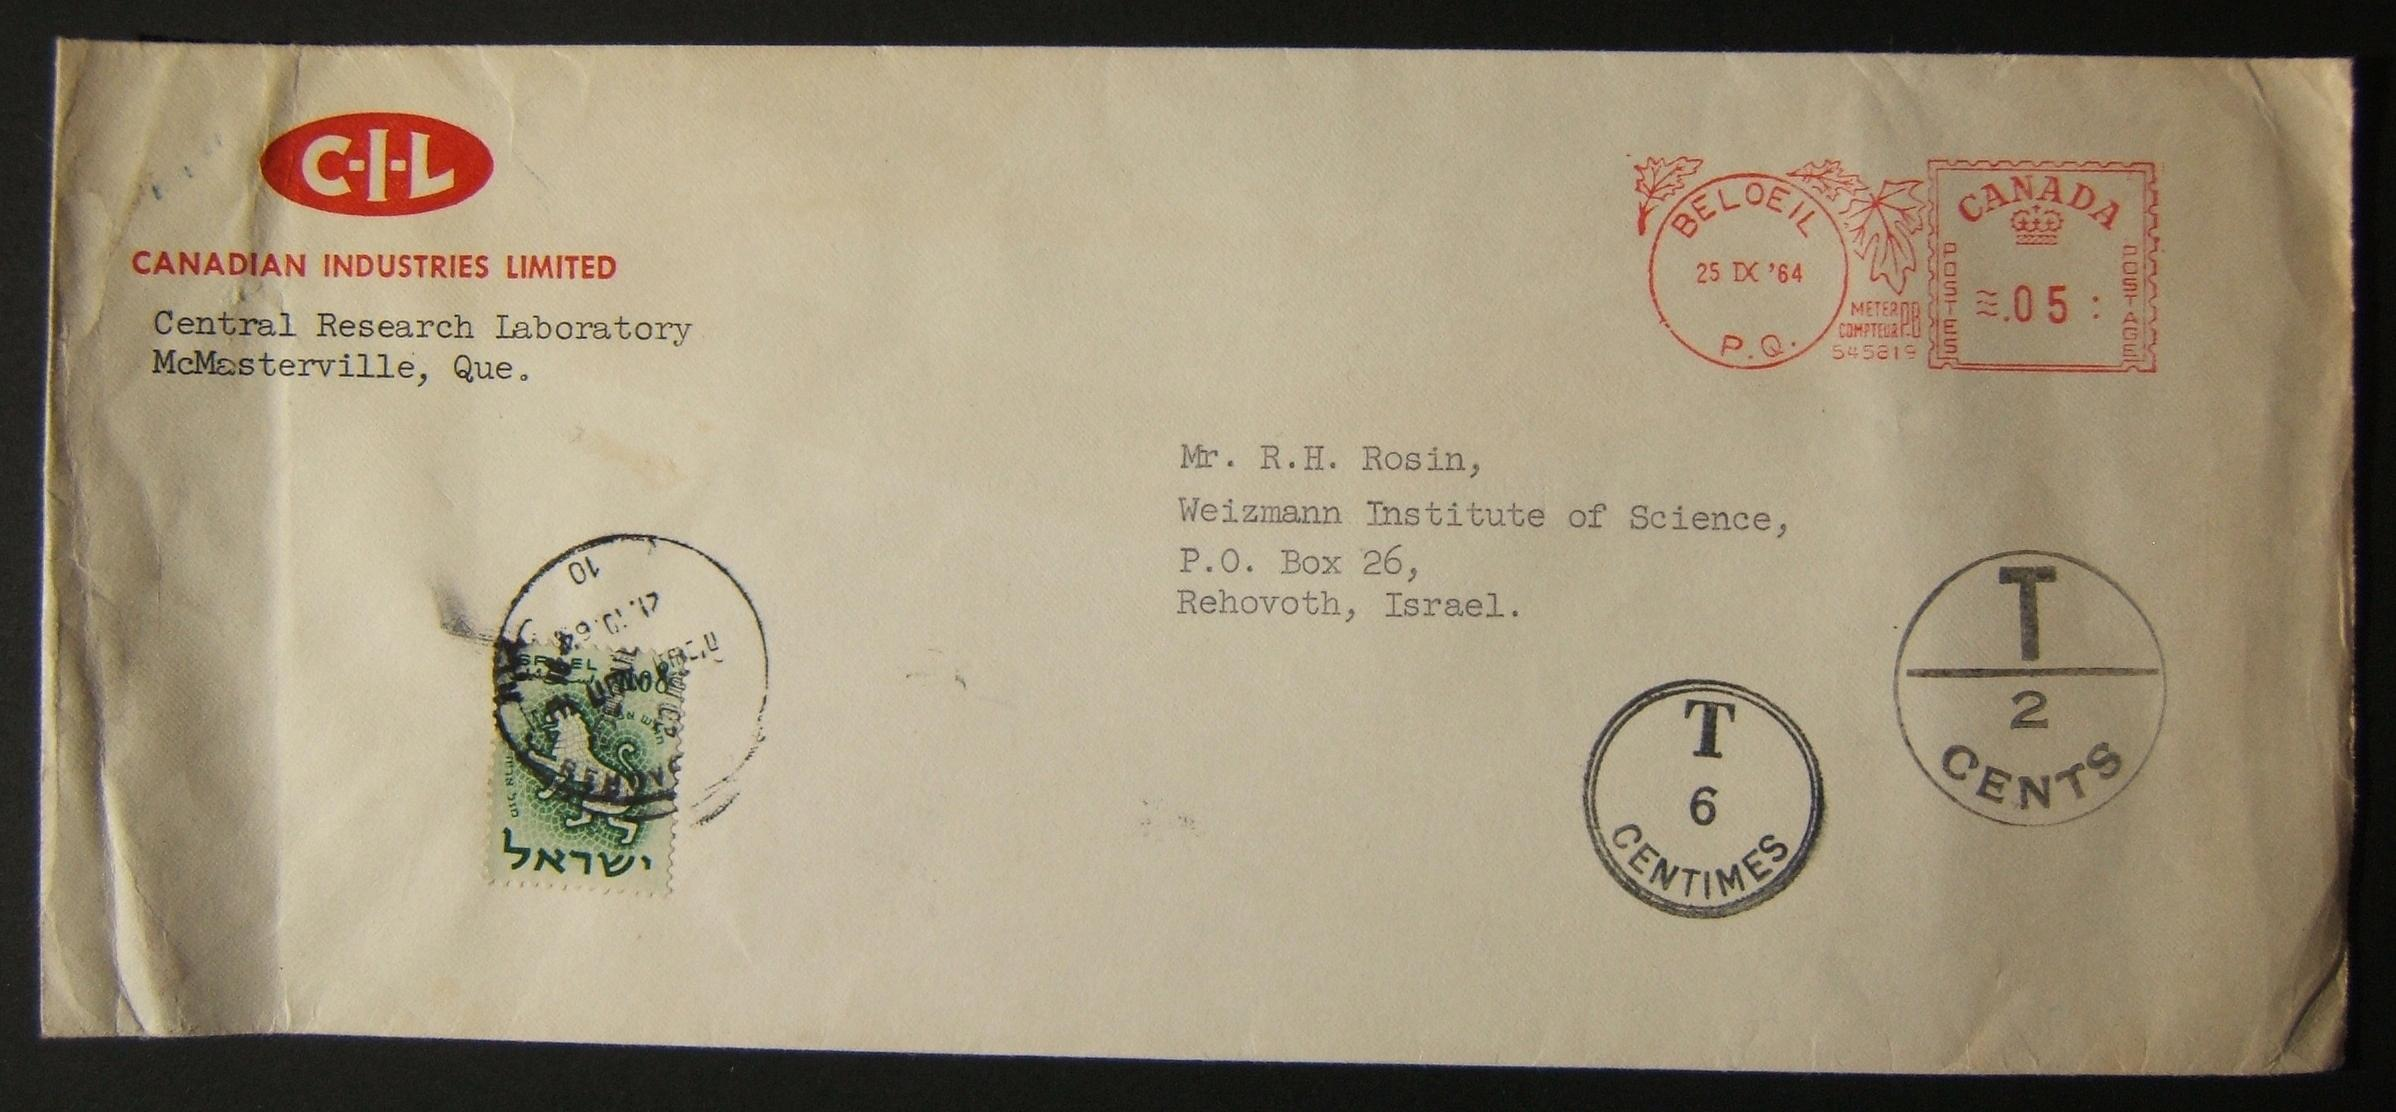 1966 incoming Canadian taxed mail: 25 IX '64 surface mailed commercial cover ex BELOEIL to Weizmann Institute REHOVOT underfranked at $0.05 and taxed 0.08L in Israel (oddly without